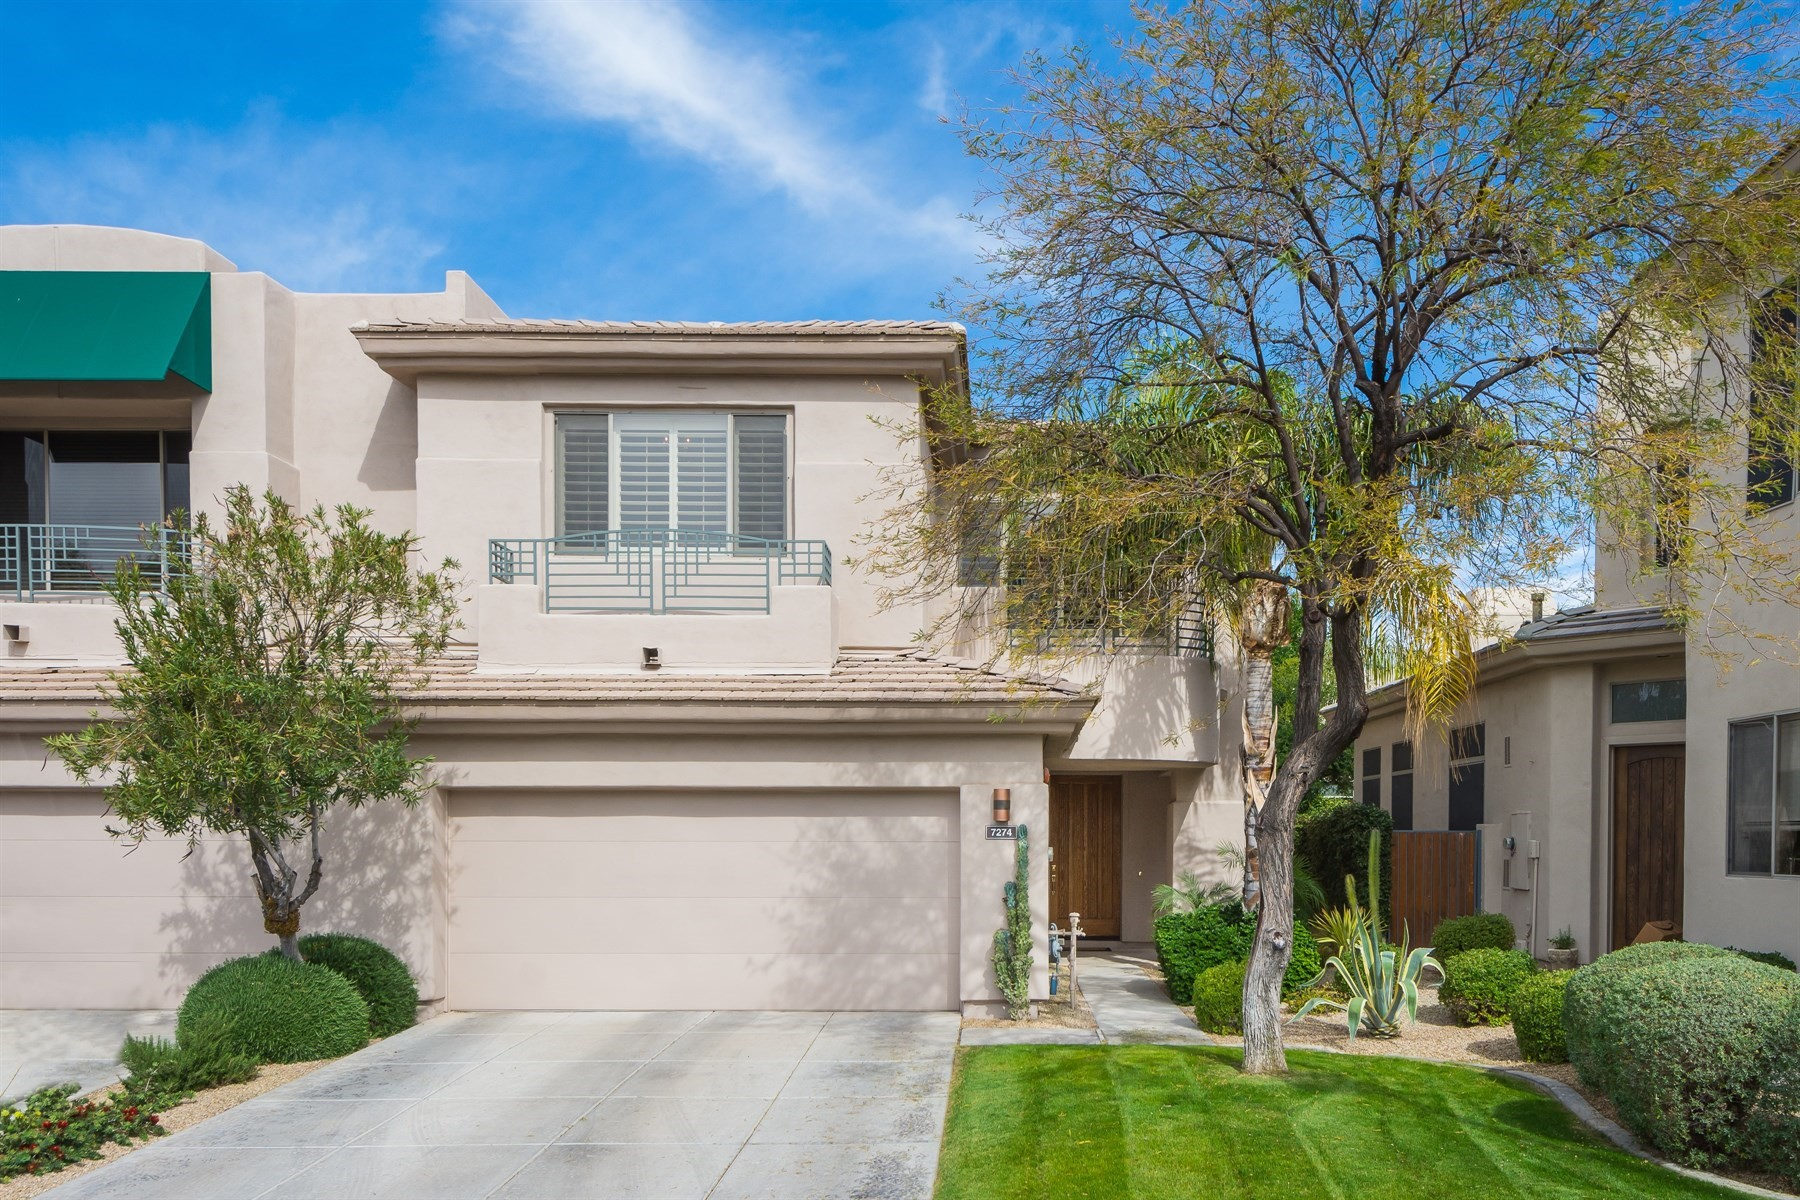 Nhà phố vì Bán tại Meticulously maintained home in the heart of Scottsdale 7274 E Del Acero Drive Scottsdale, Arizona, 85258 Hoa Kỳ